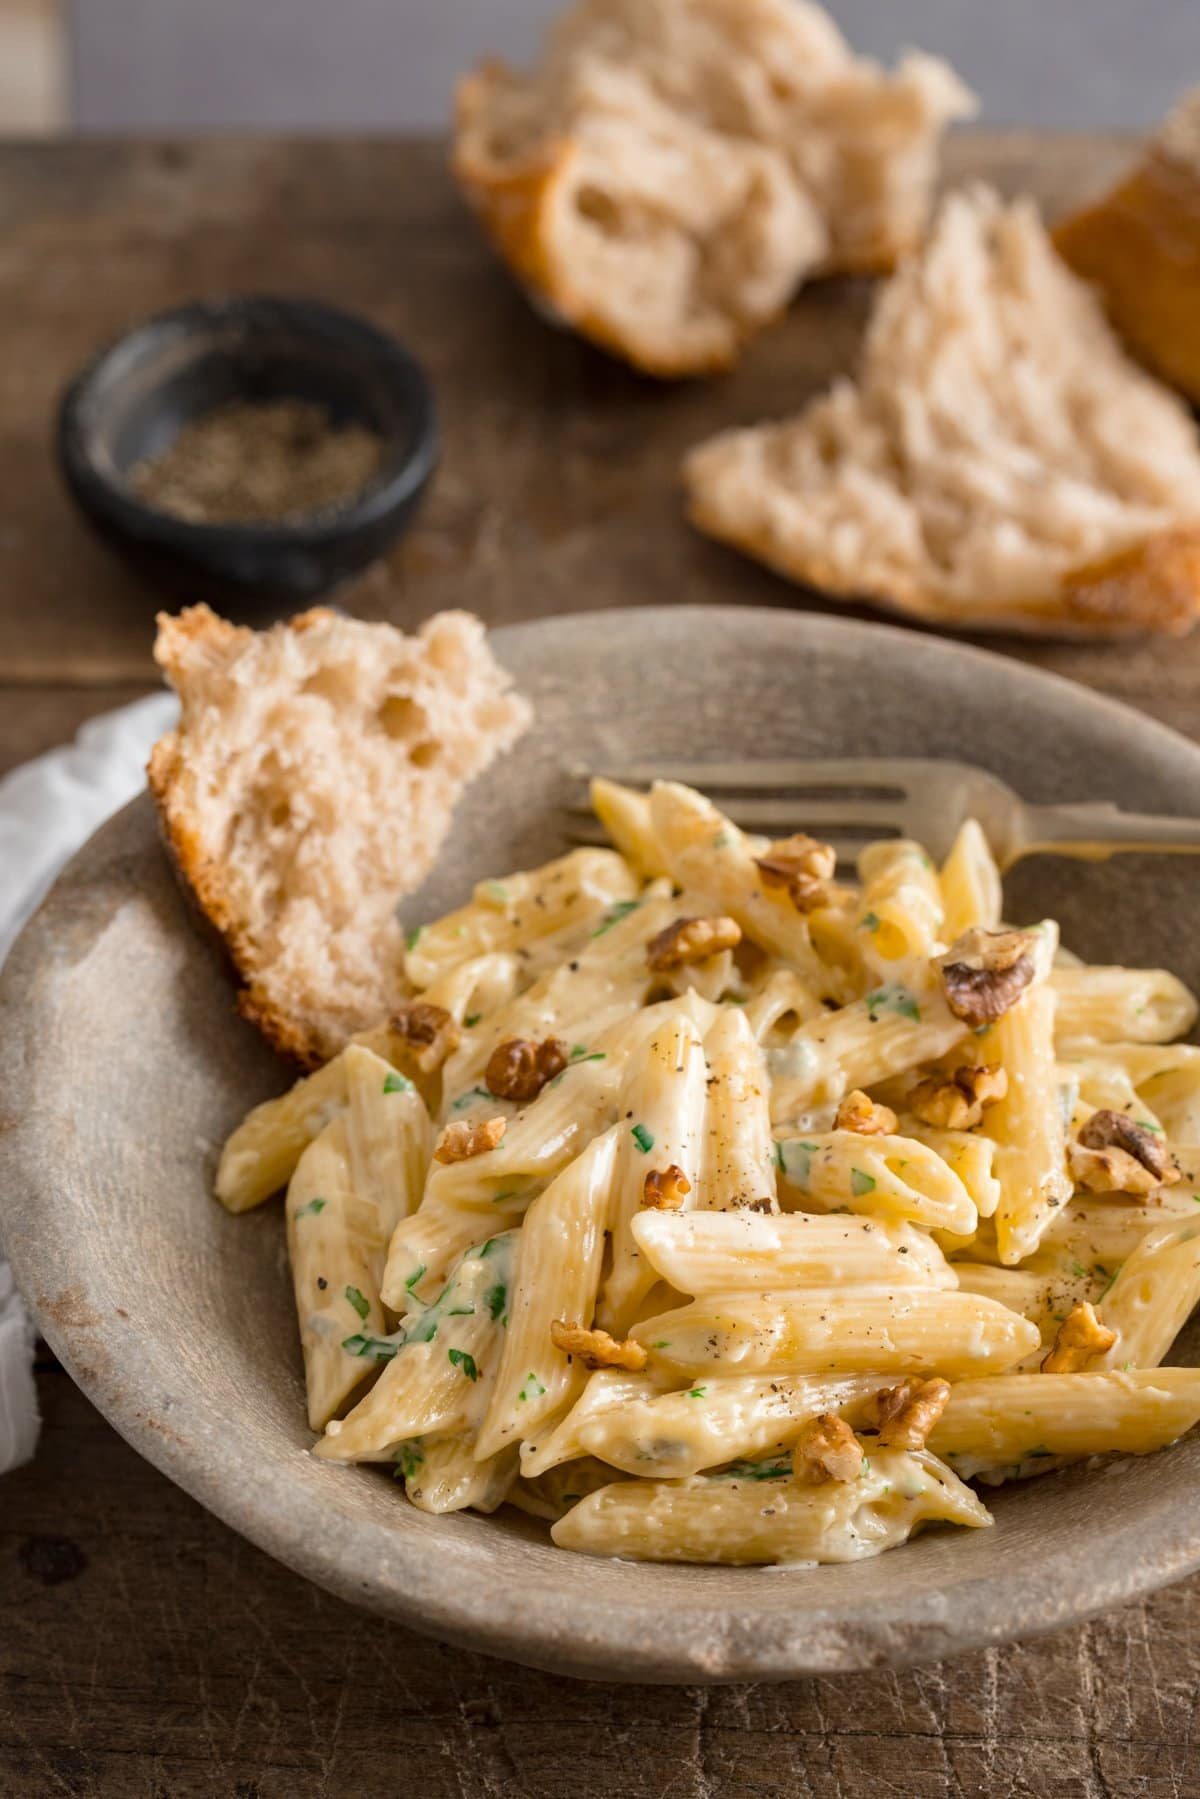 Gorgonzola pasta in a stone bowl on a wooden table. Pieces of bread in the bowl and in the background.